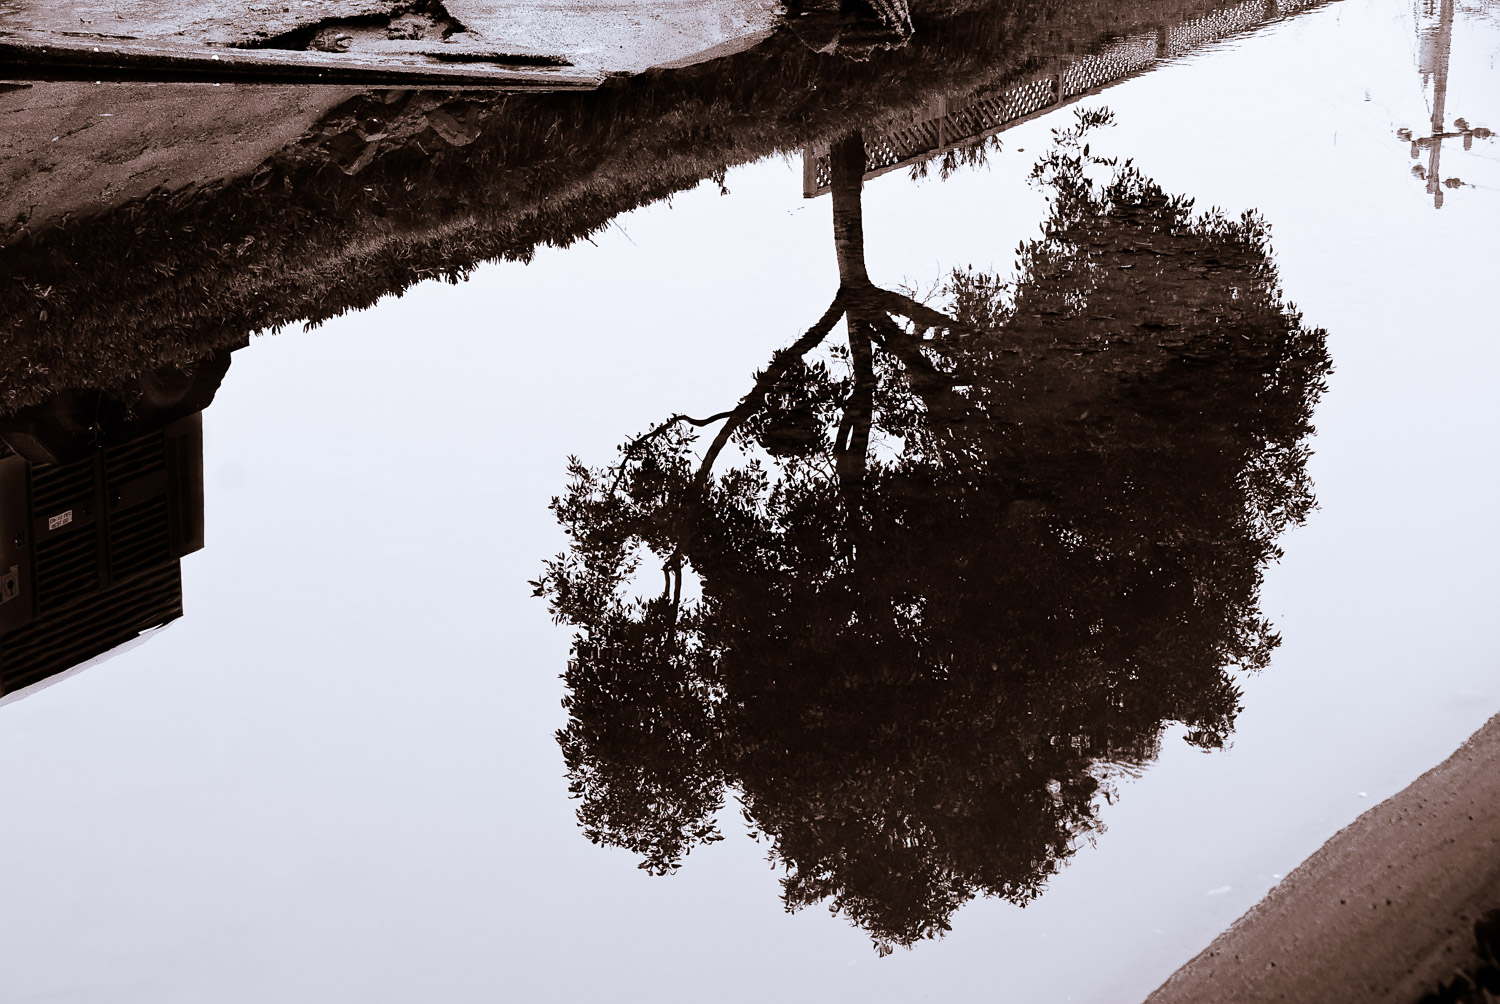 Tree Reflection in Brown | Mark Lindsay